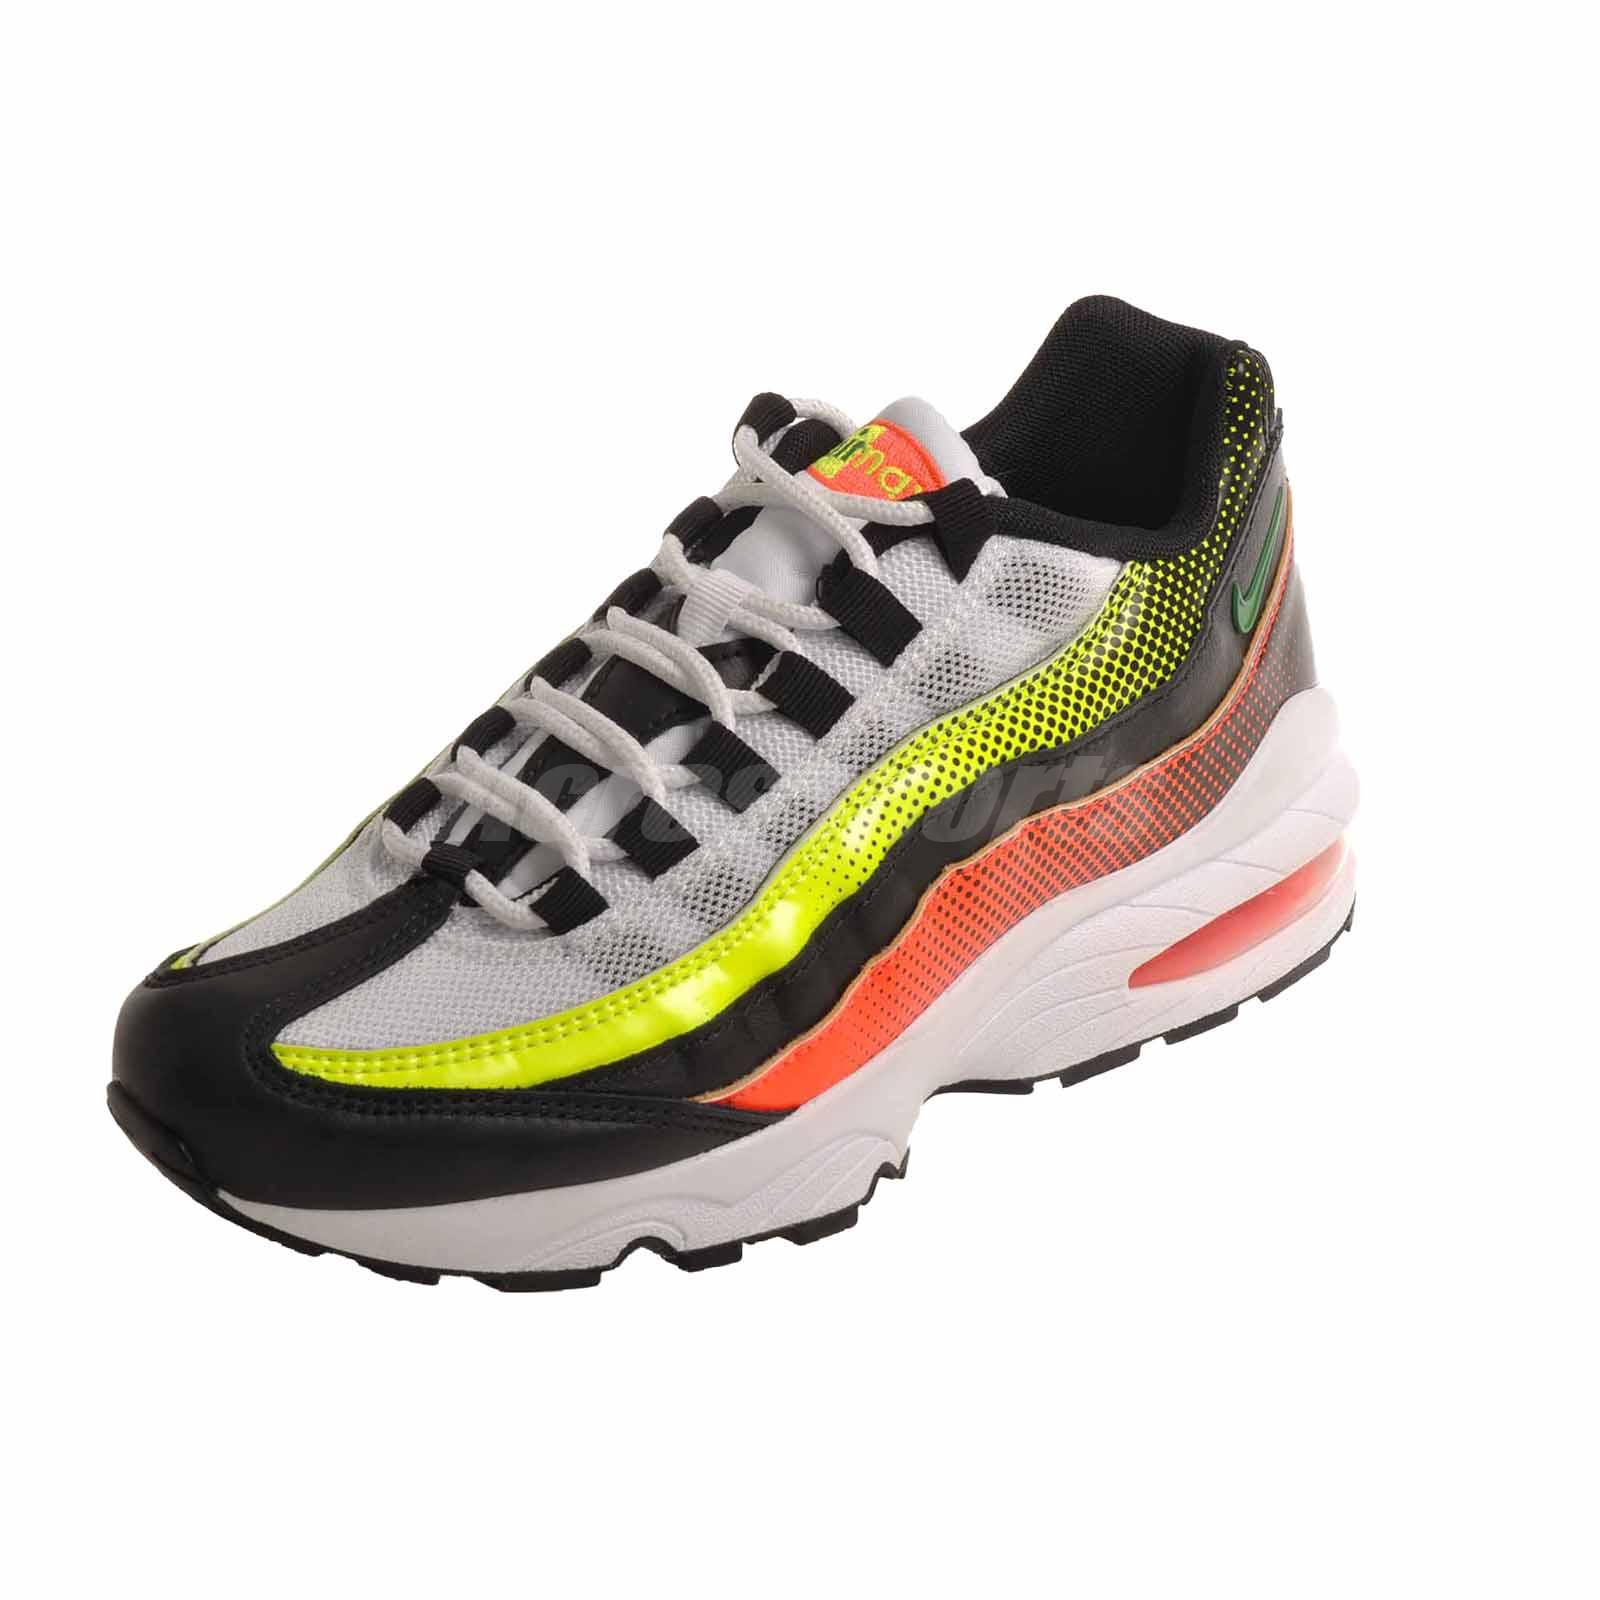 designer fashion ebe8d 2763b Details about Nike Air Max 95 RF GS Running Kids Youth Shoes Black Aloe  AV5138-001